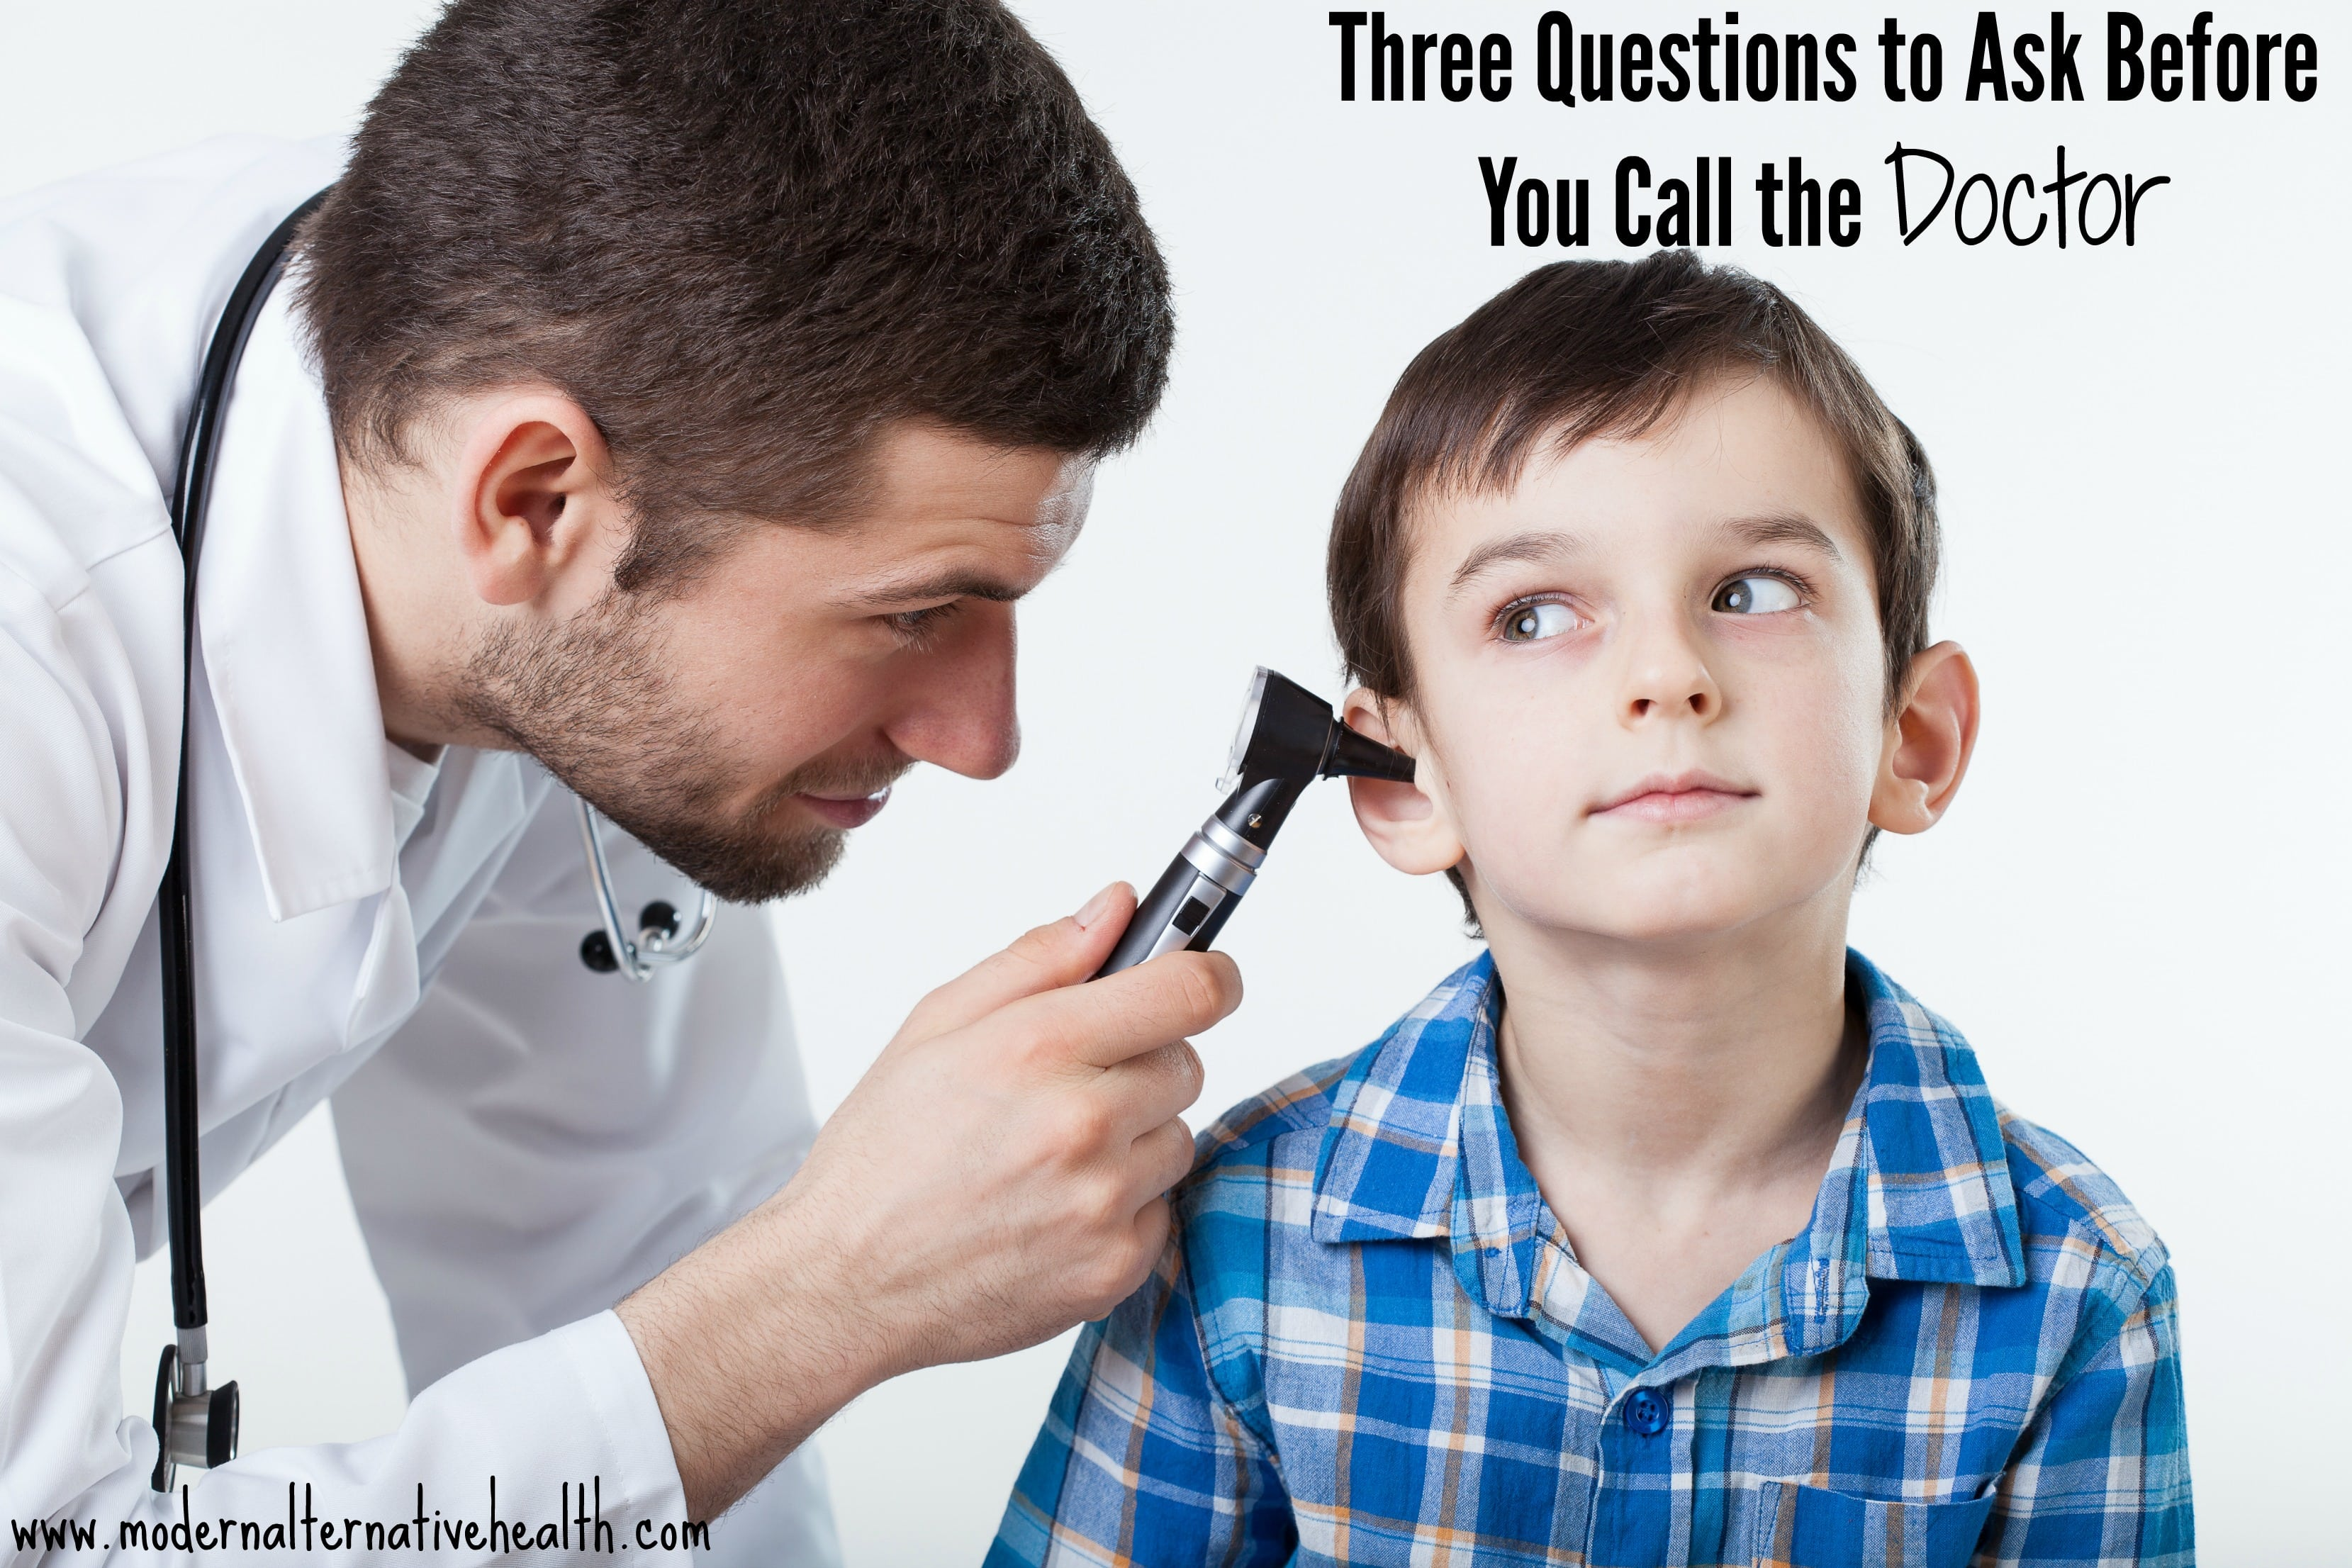 Three Questions to Ask Before You Call the Doctor